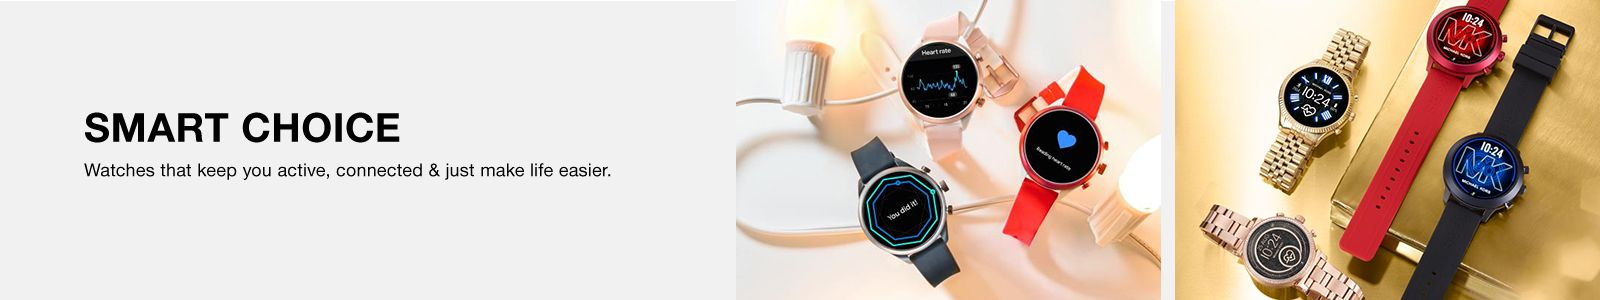 Smart Choice, Watches that keep you active, connected and just Make life easier